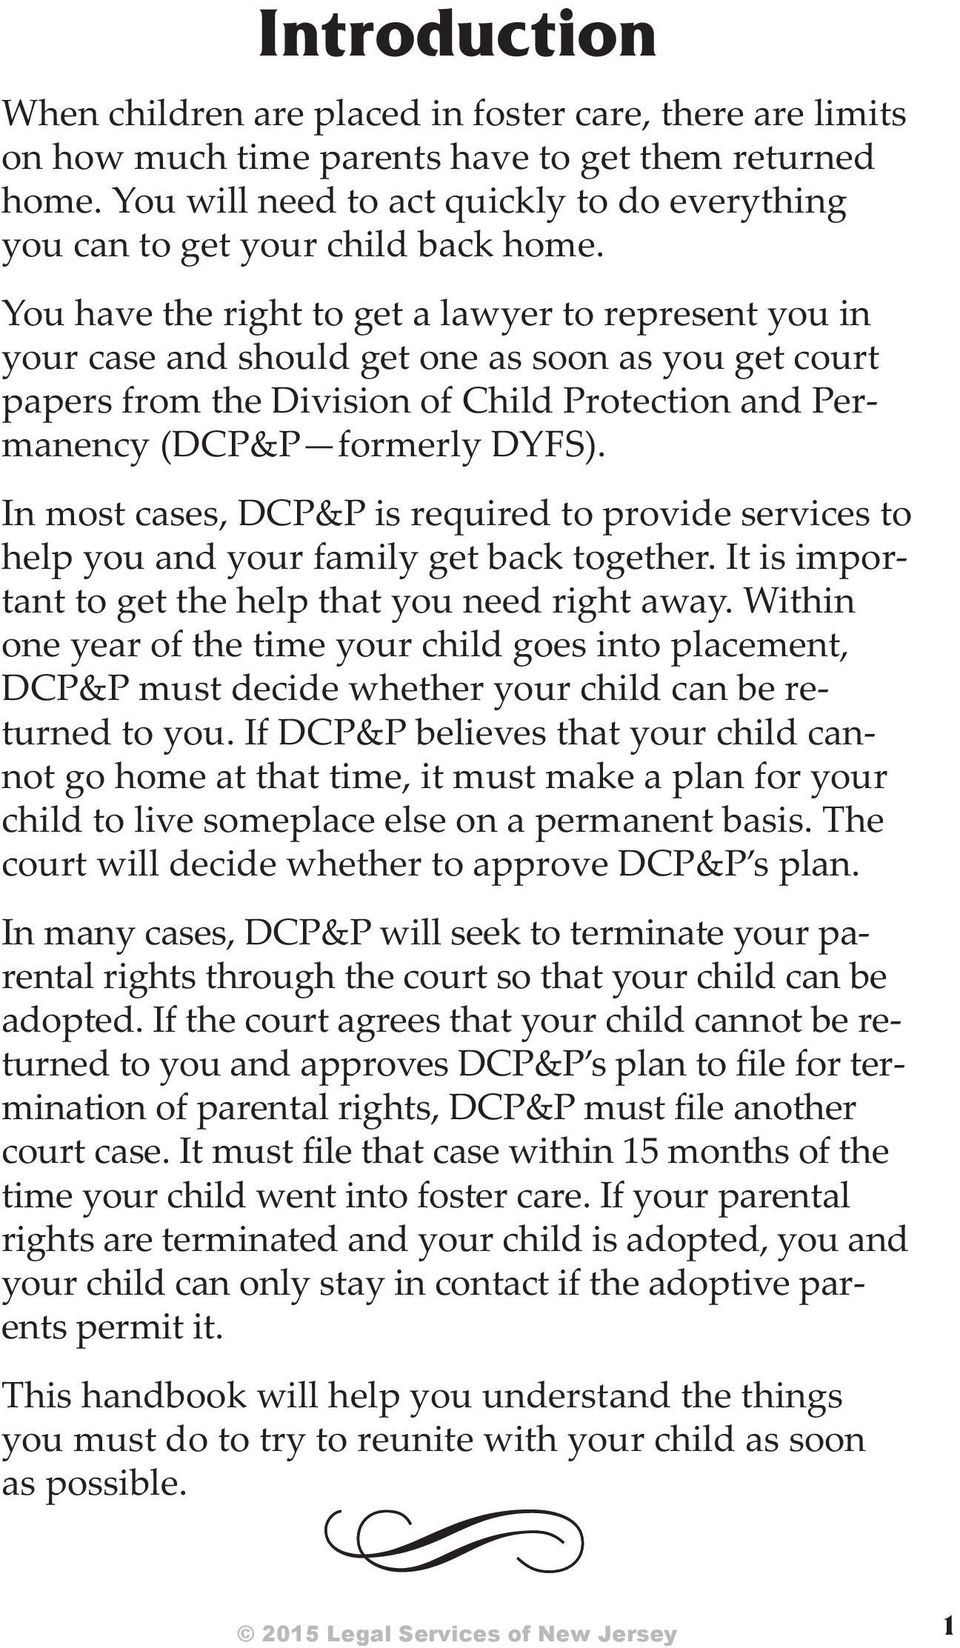 You have the right to get a law yer to rep re sent you in your case and should get one as soon as you get court pa pers from the Di vi sion of Child Pro tec tion and Per - manency (DCP&P for merly